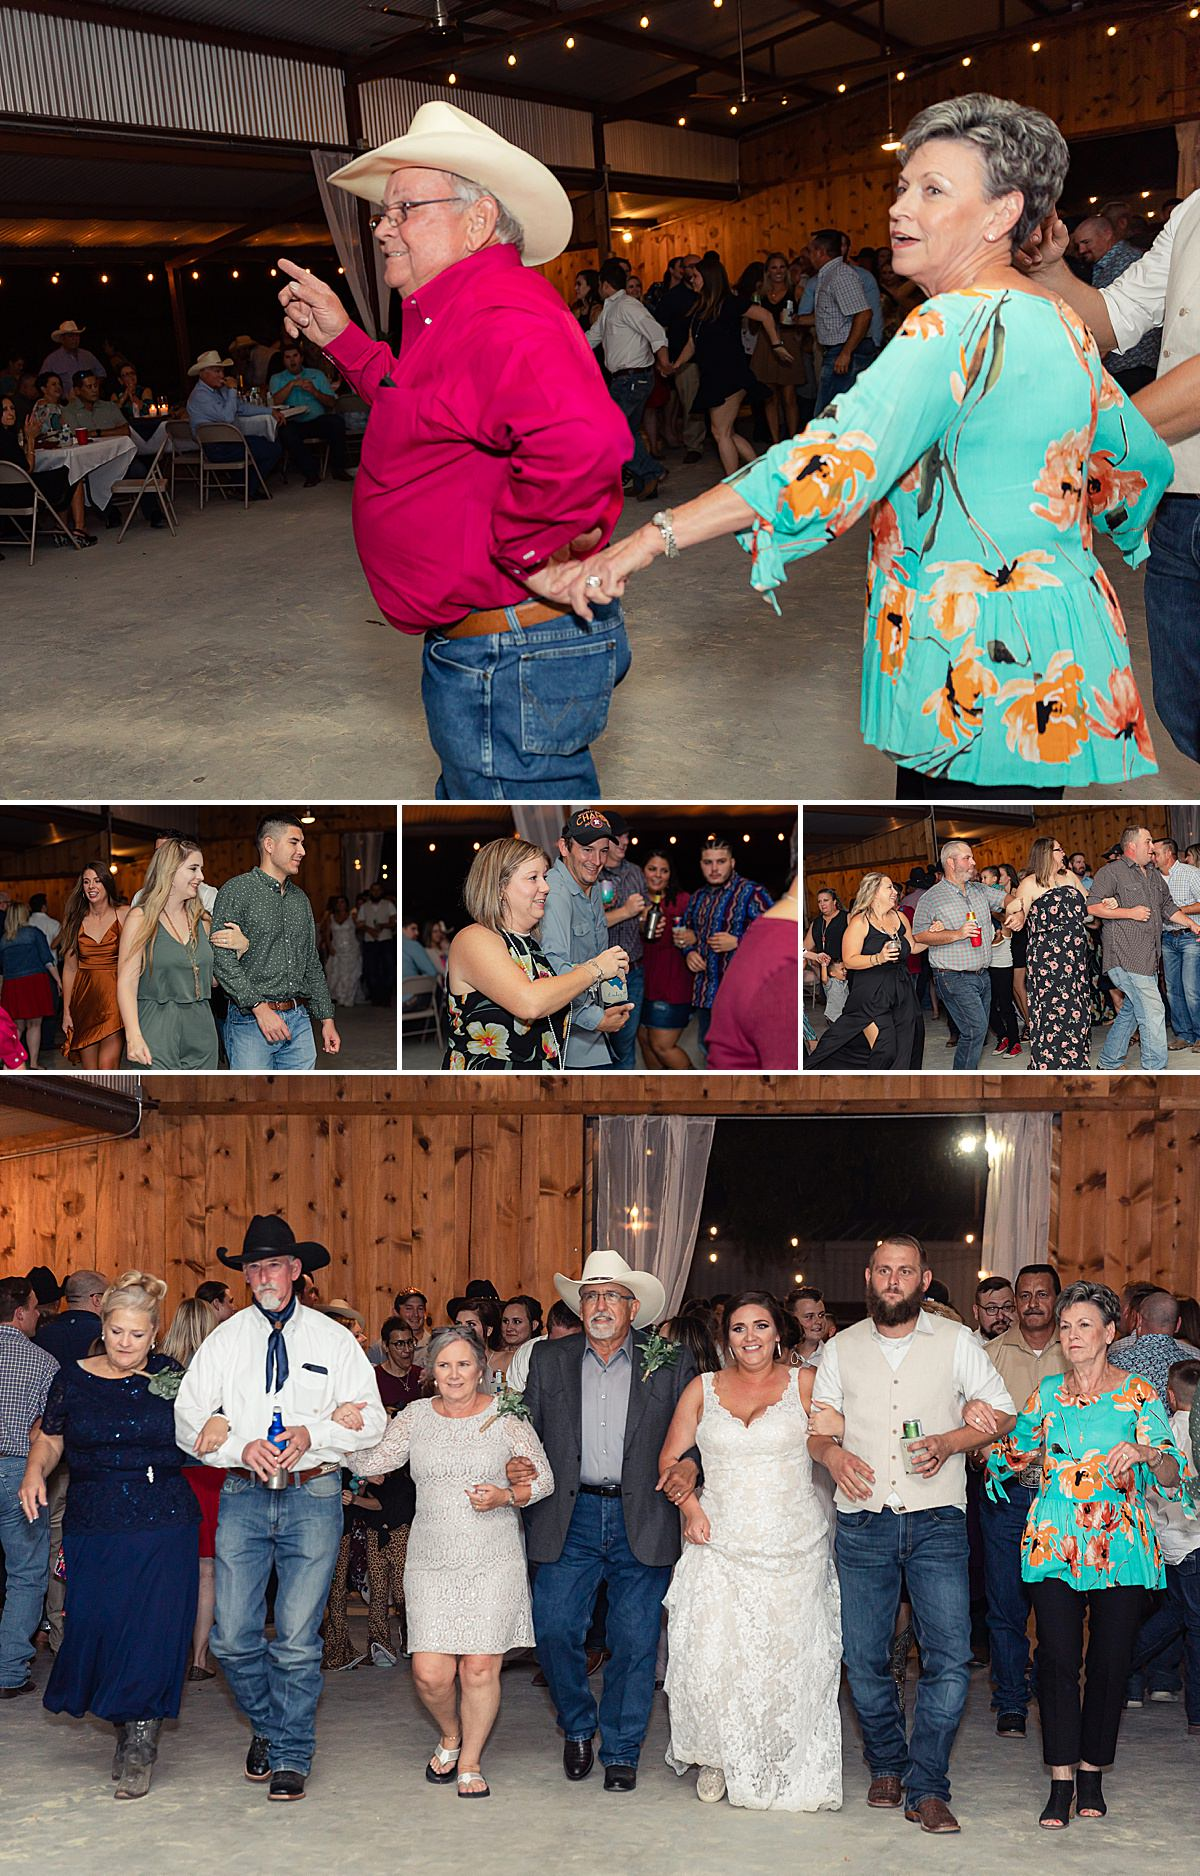 Rustic-Texas-Wedding-Hollow-Creek-Ranch-Carly-Barton-Photography_0006.jpg